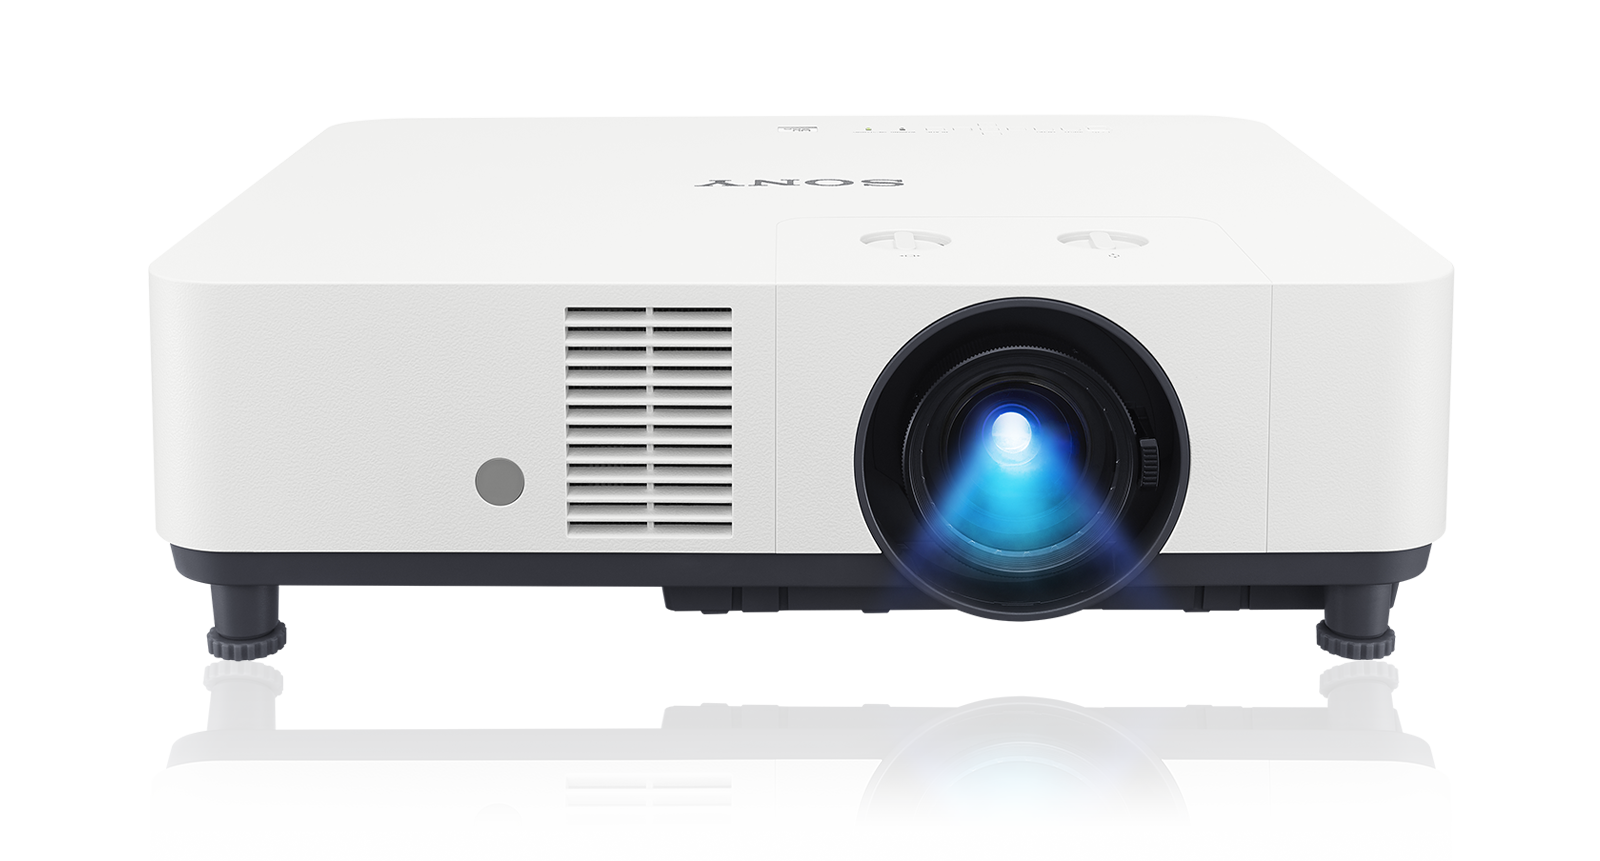 A front view of the VPL-PHZ60/VPL-PHZ50 laser installation projector in white.